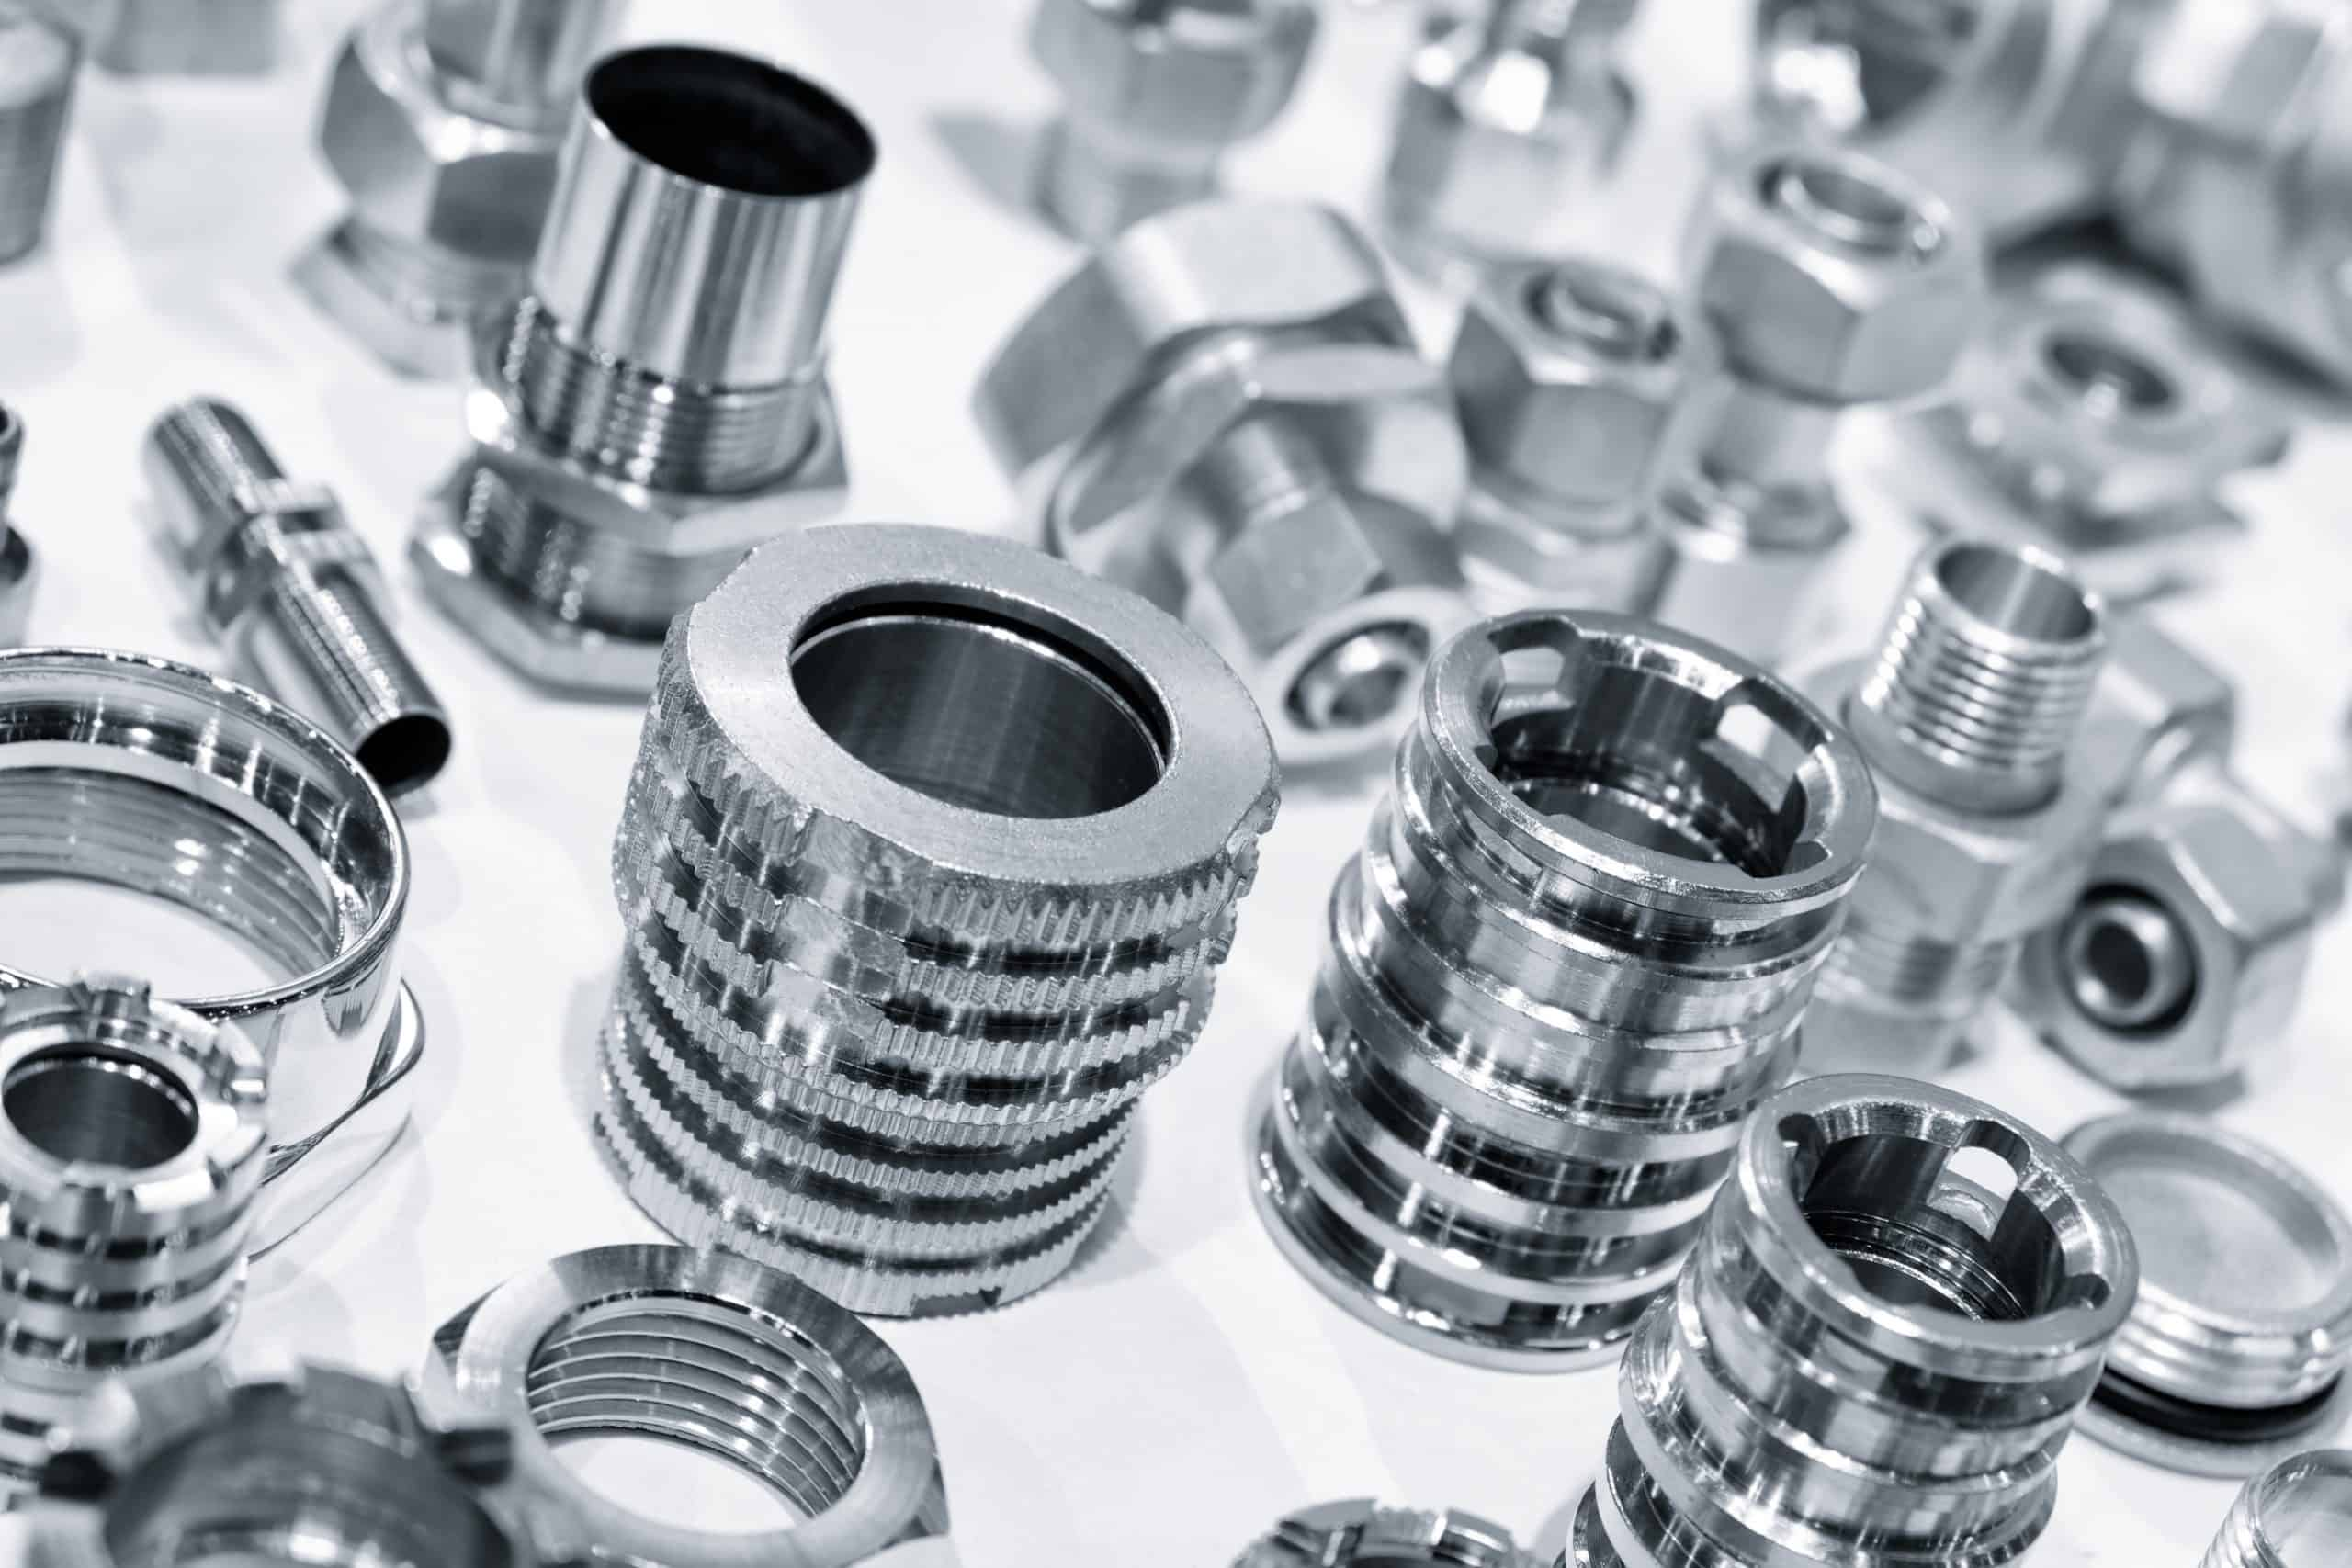 Different types of cnc machined parts